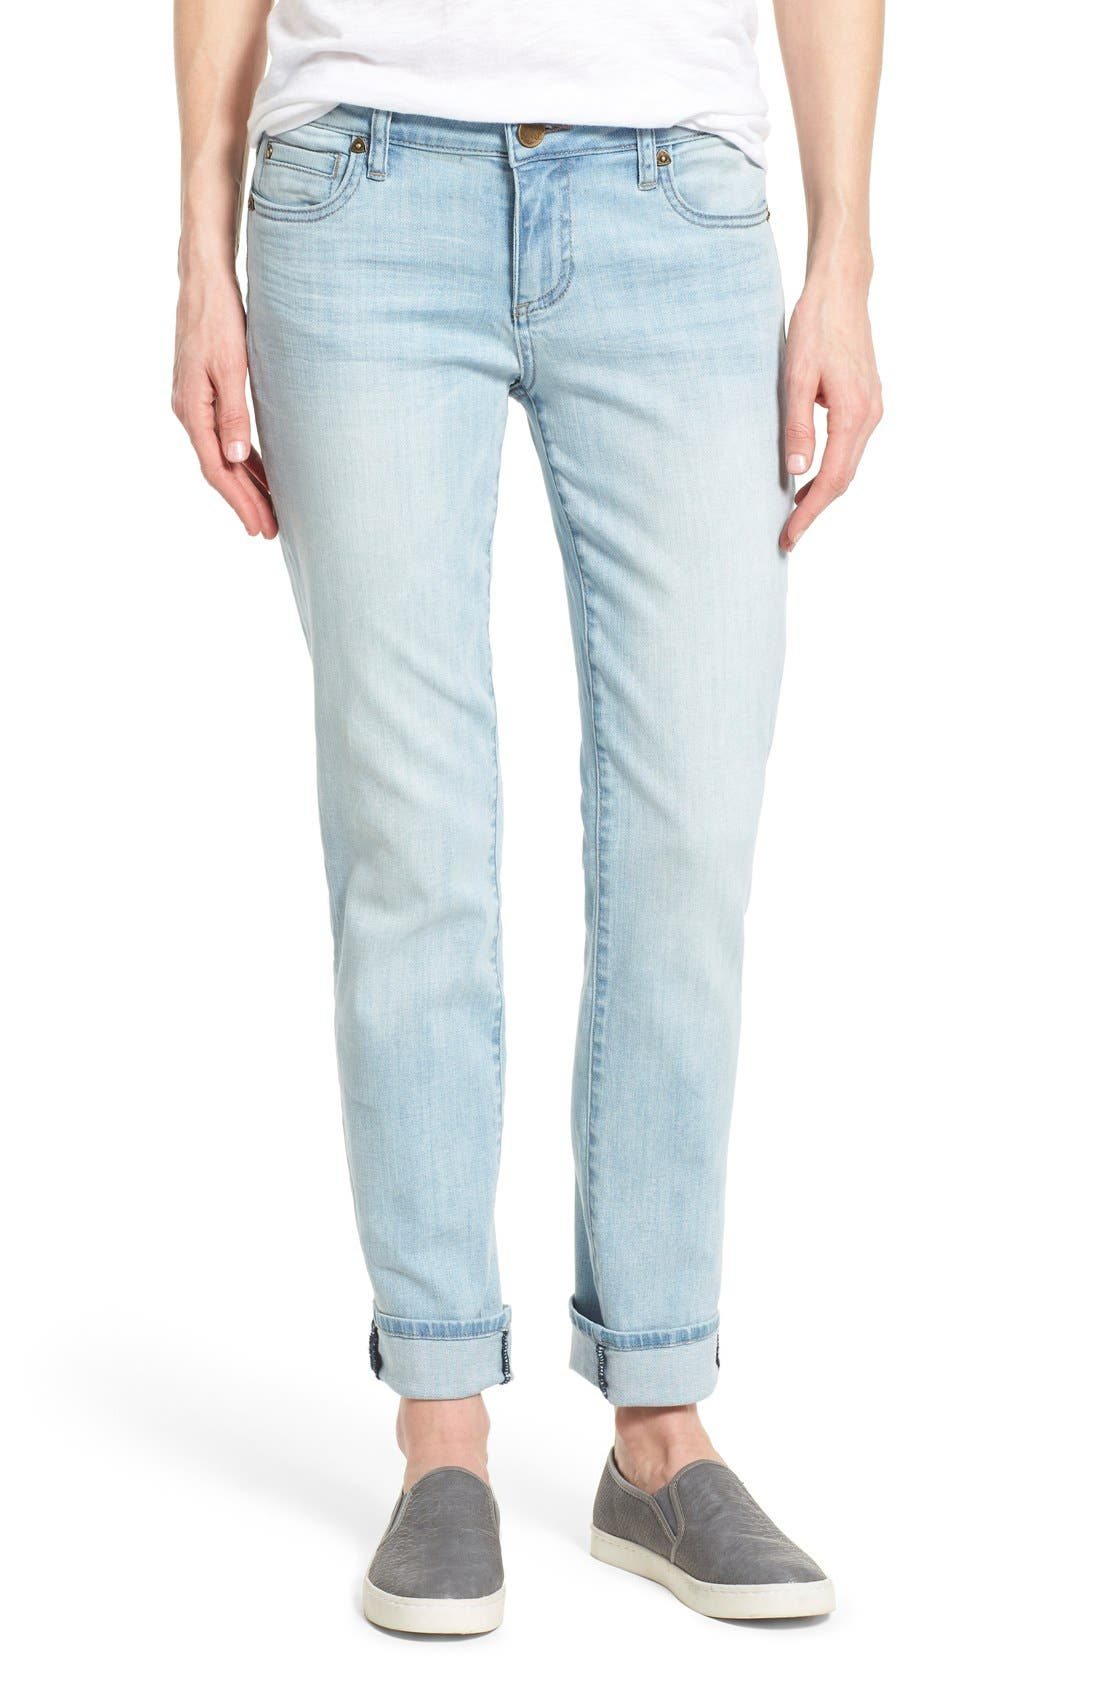 Main Image - KUT from the Kloth 'Catherine' Stretch Slim Boyfriend Jeans (Artistic)